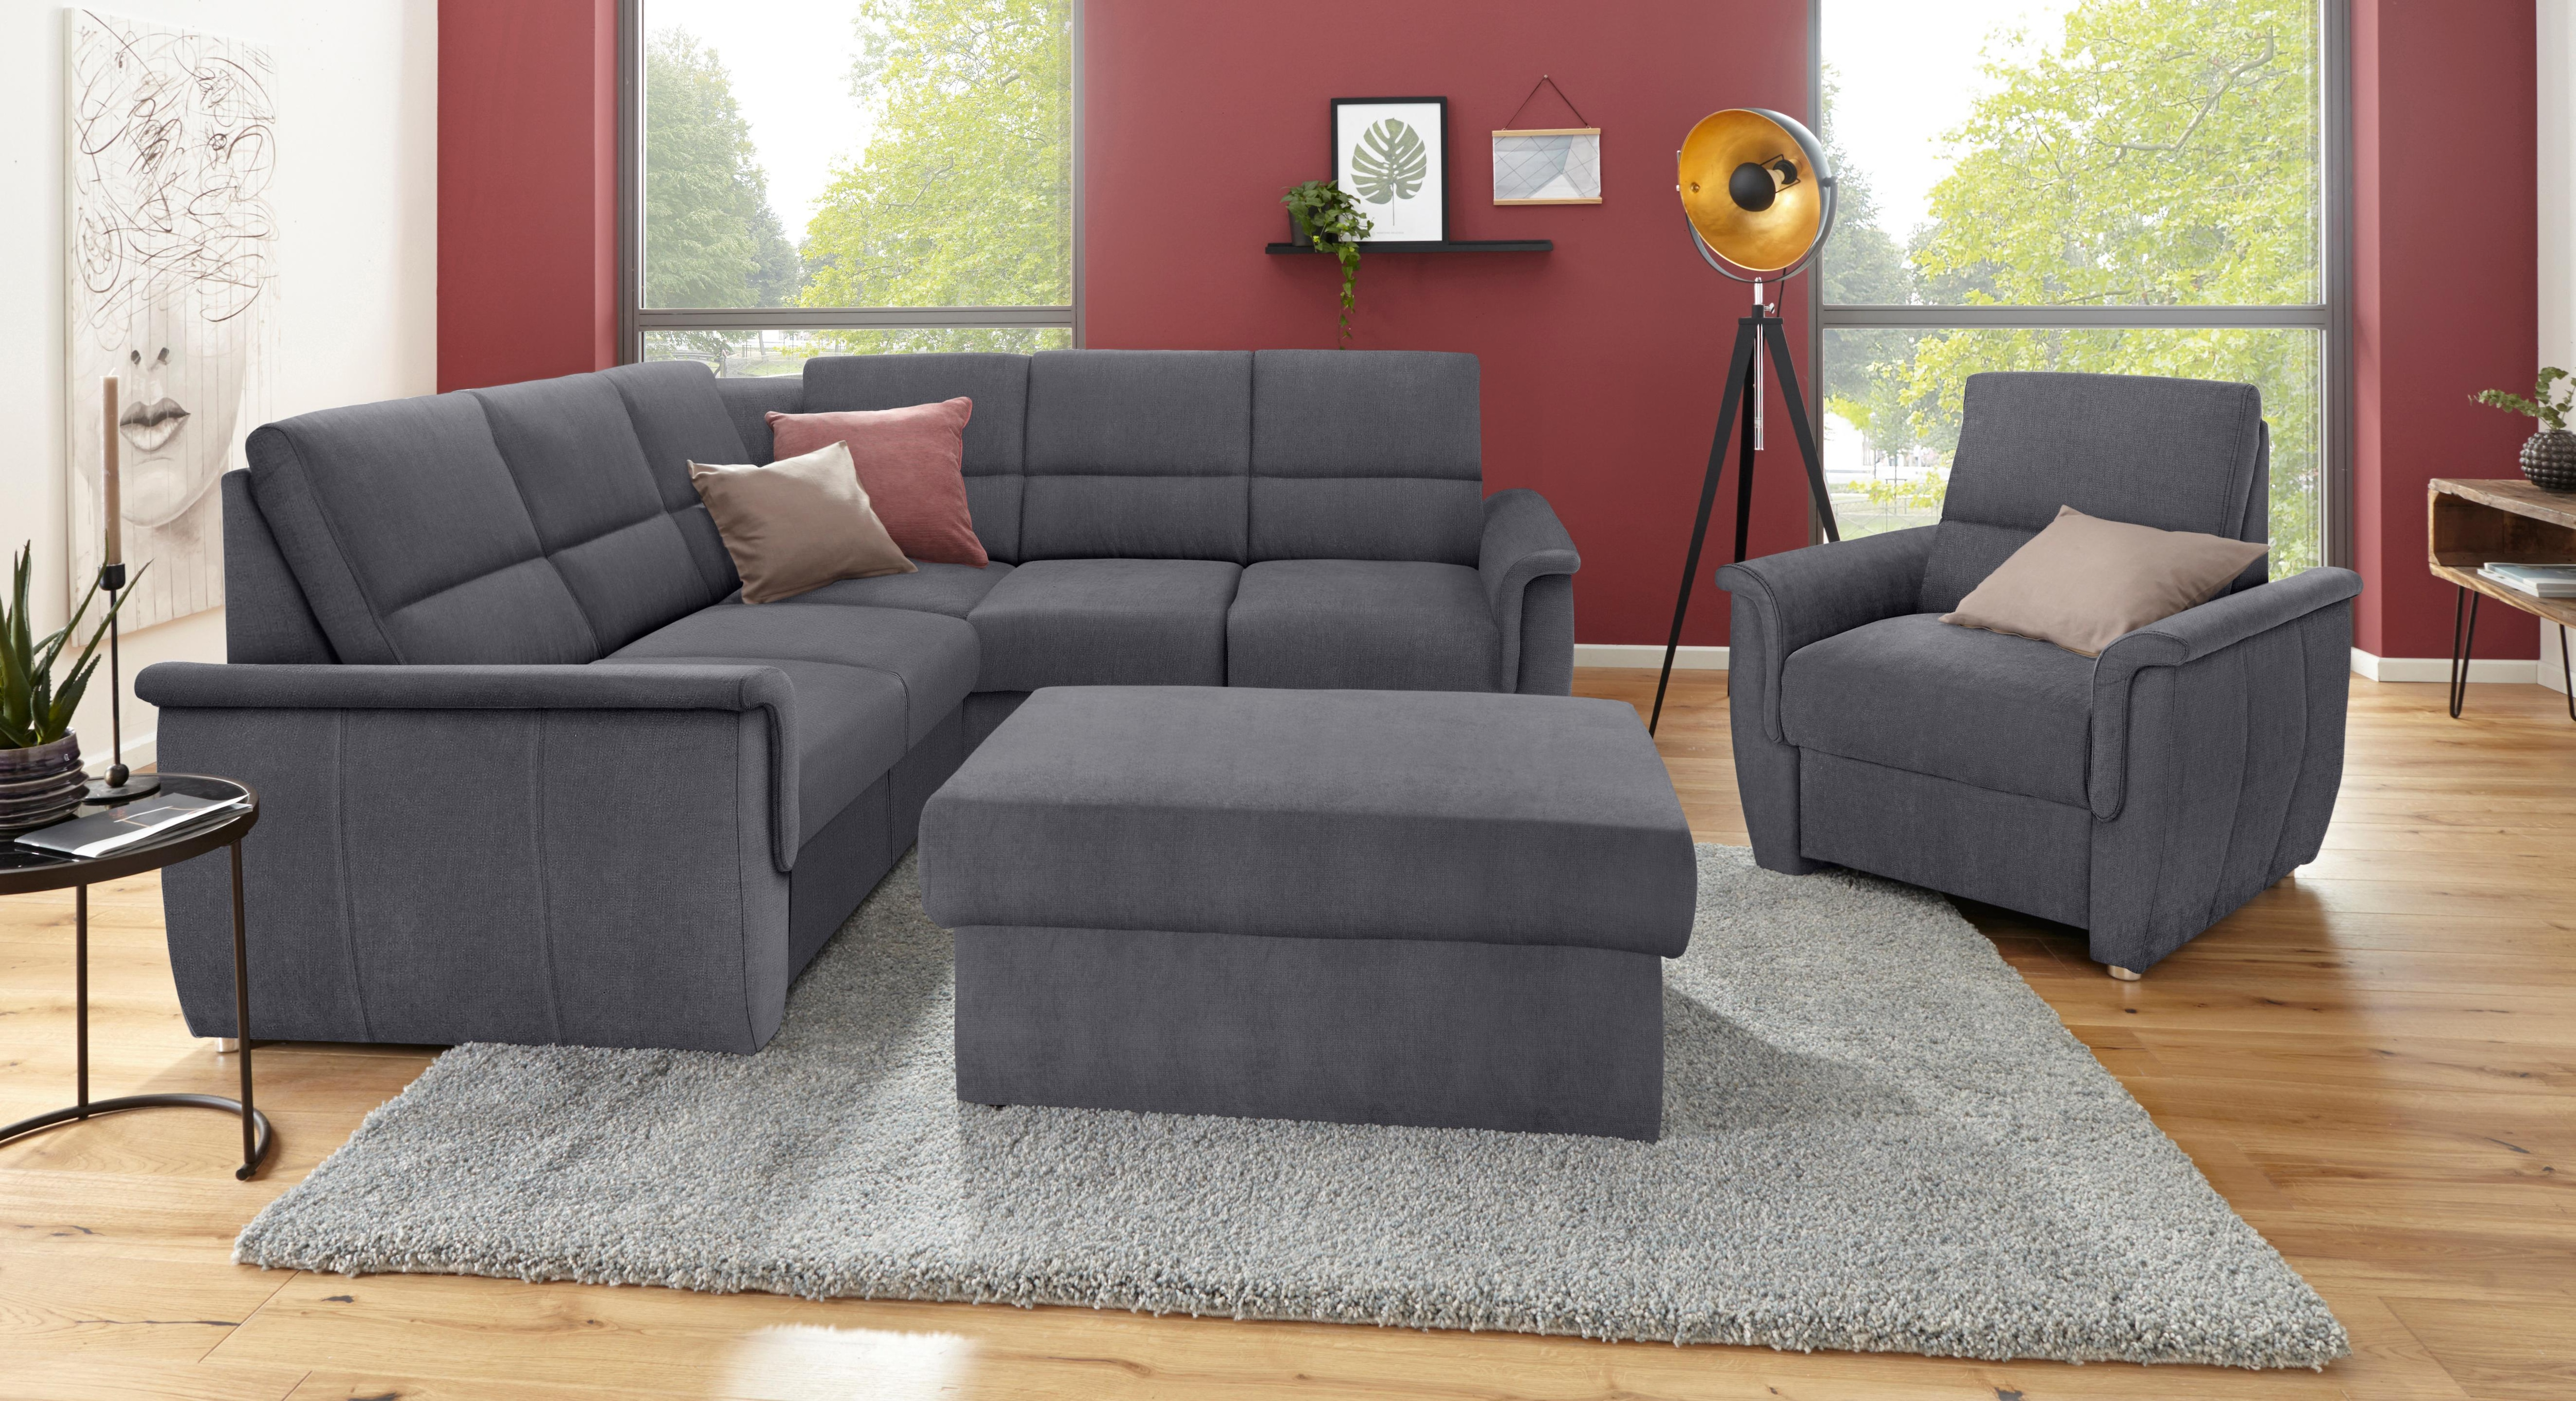 DOMO collection Ecksofa